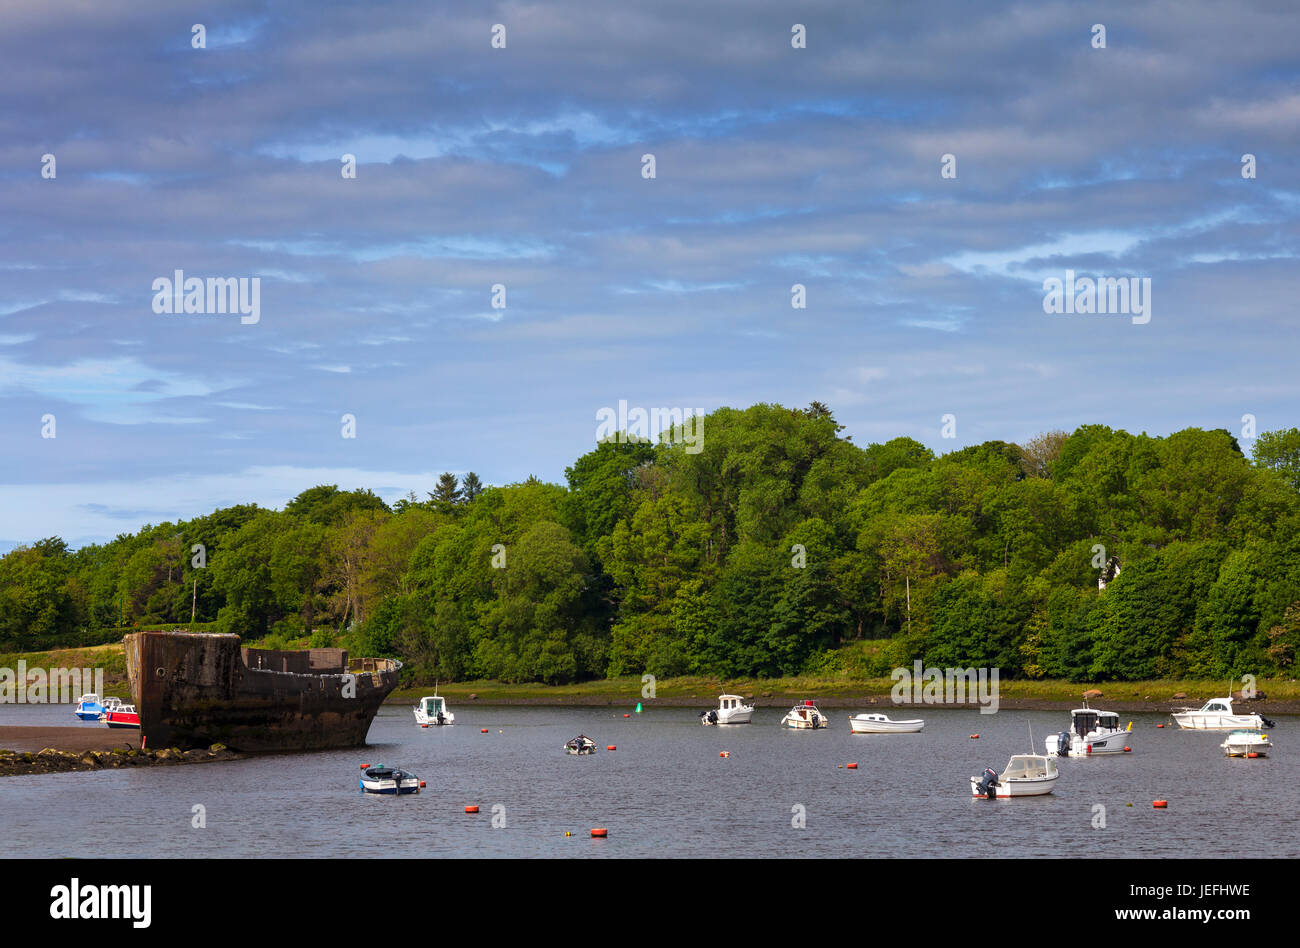 The wrecked 'Creteboom', a concrete boat built in 1917 on the bank of the River Moy, Beleek Woods, Balina, - Stock Image